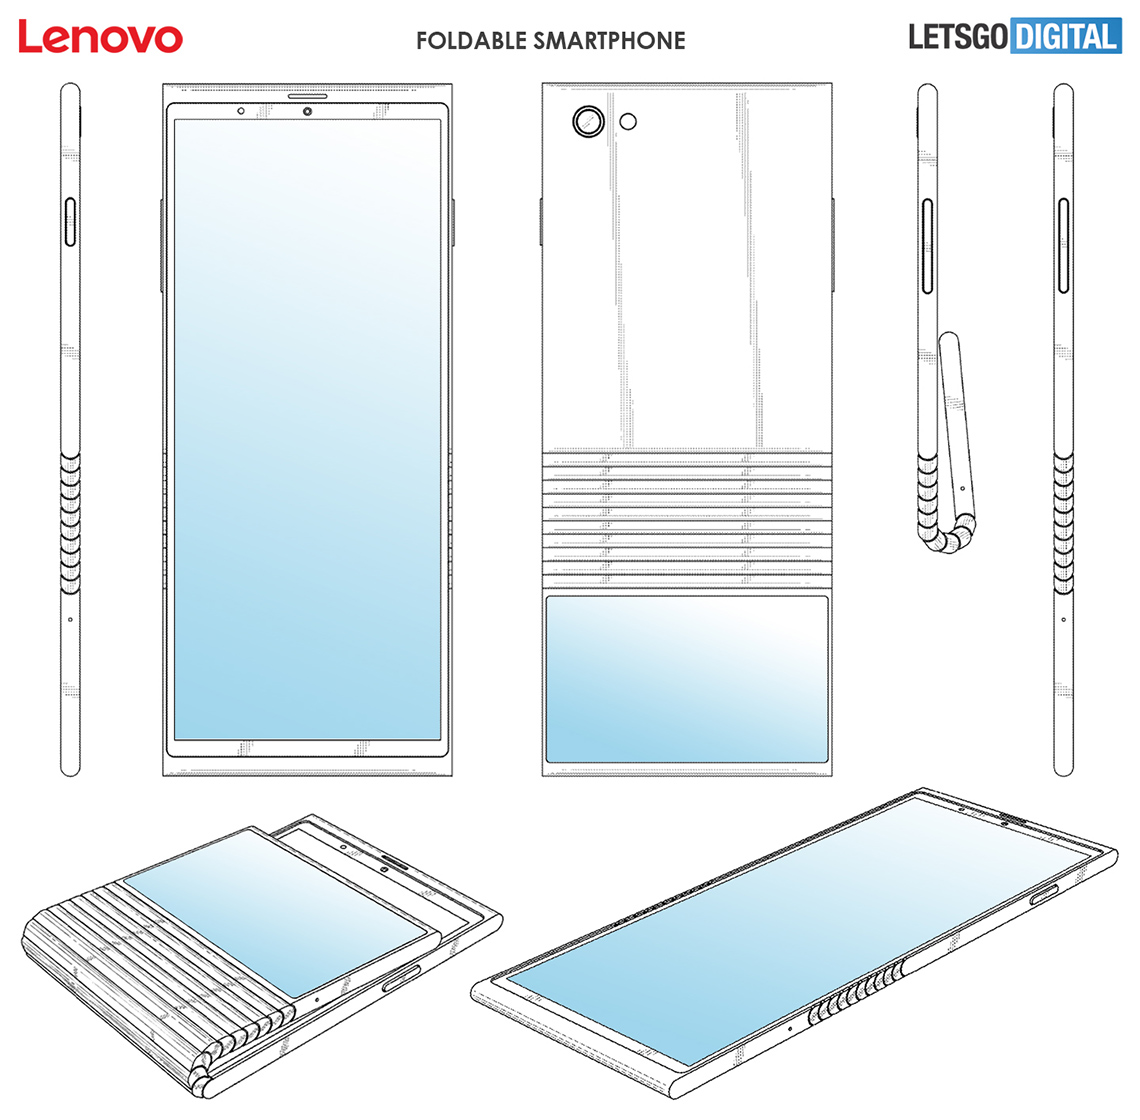 Lenovo patents a foldable smartphone design that folds on the back